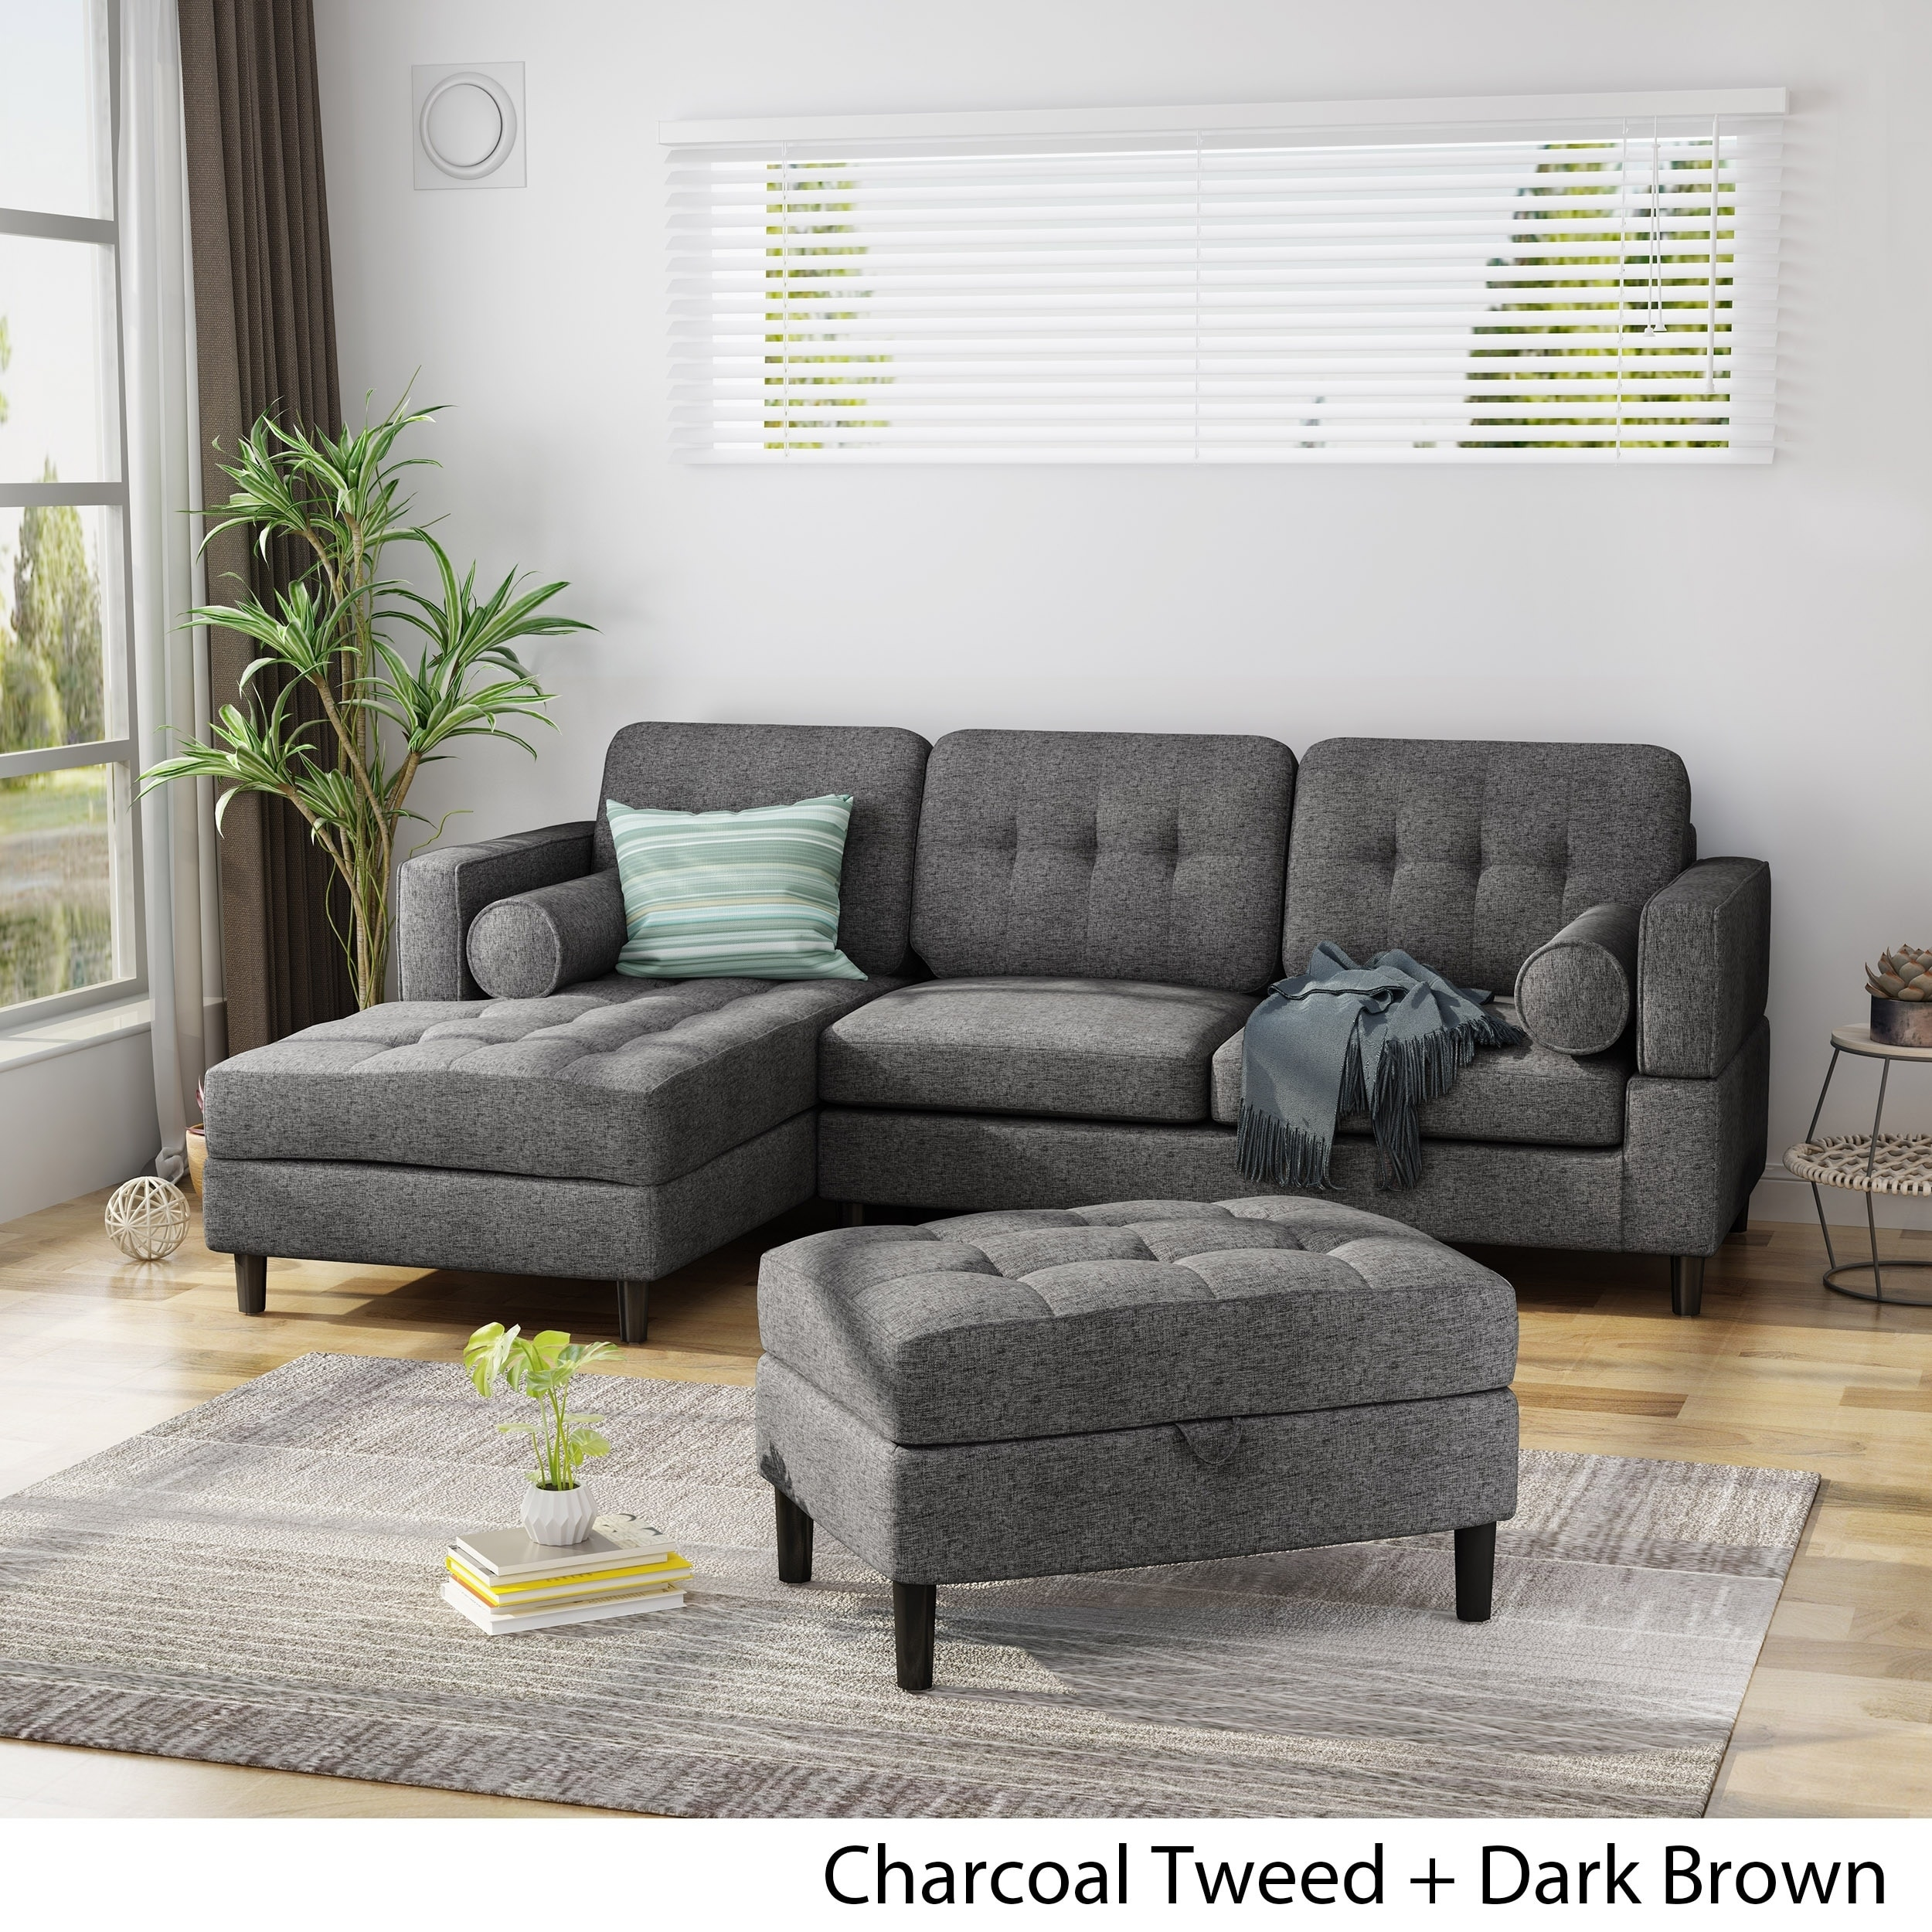 florentia upholstered 2 piece chaise sectional sofa set with storage ottoman by christopher knight home